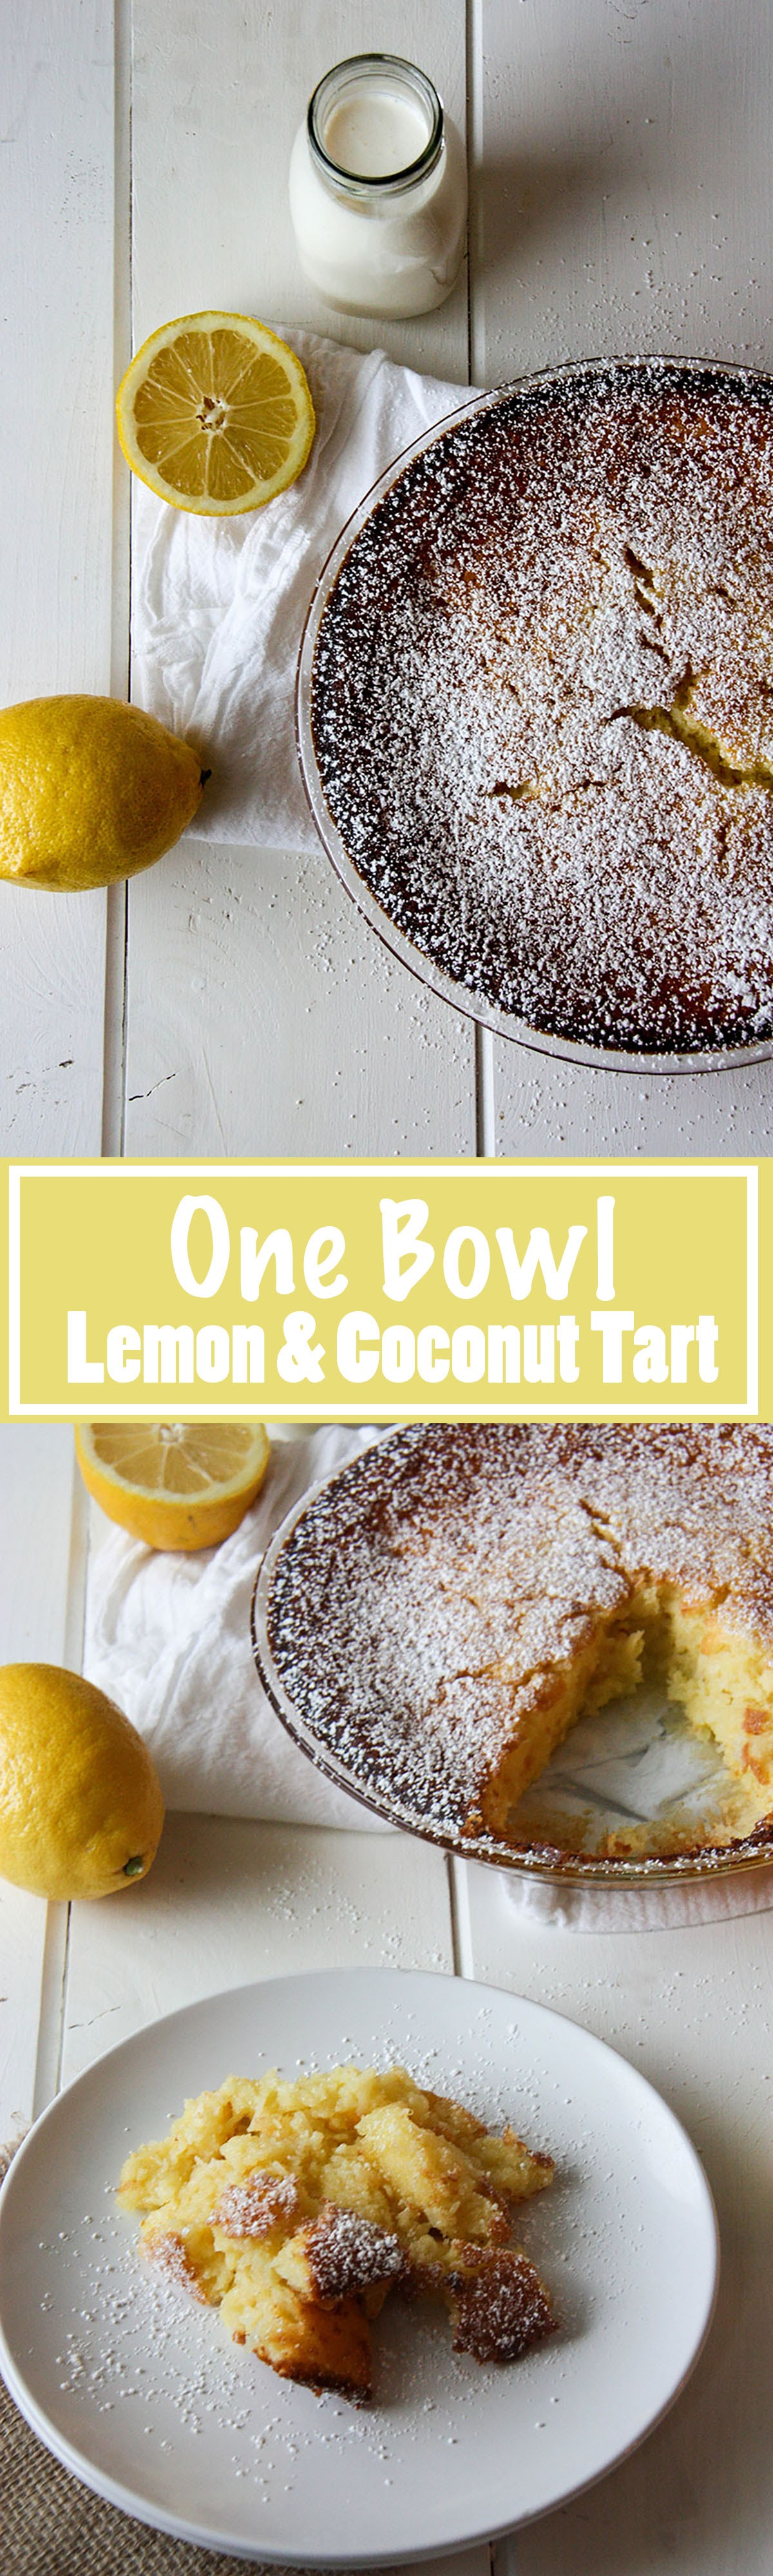 One Bowl Lemon & Coconut Tart easy to make, no fuss, this light and fluffy tart is perfect for entertaining! Perfect balance of sweet and sour www.thehomecookskitchen.com